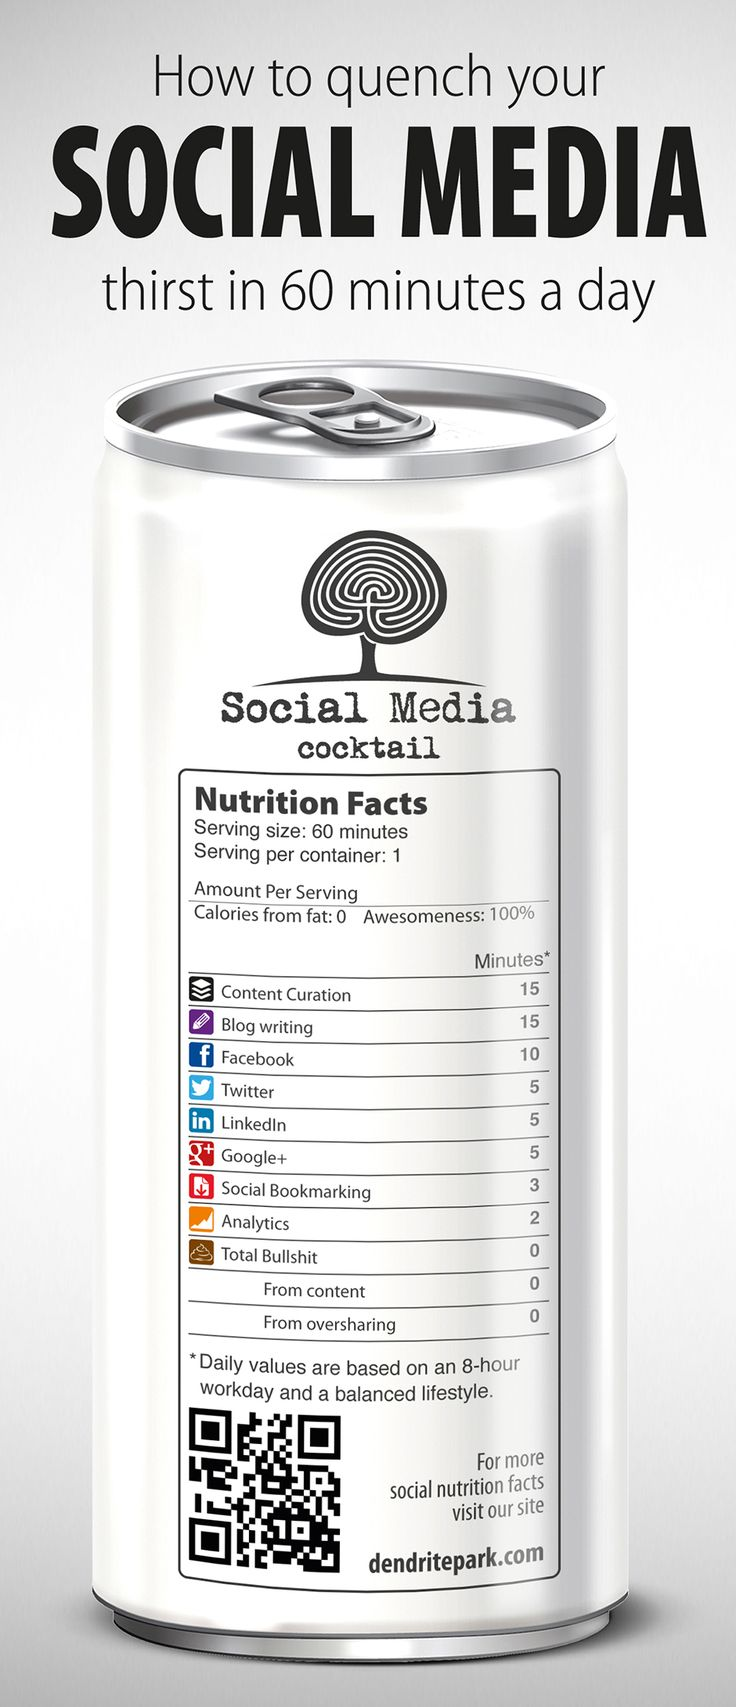 InfoGraphic: How to Get Your Social Media Fix in Just 60 Minutes a Day | Dendrite Park